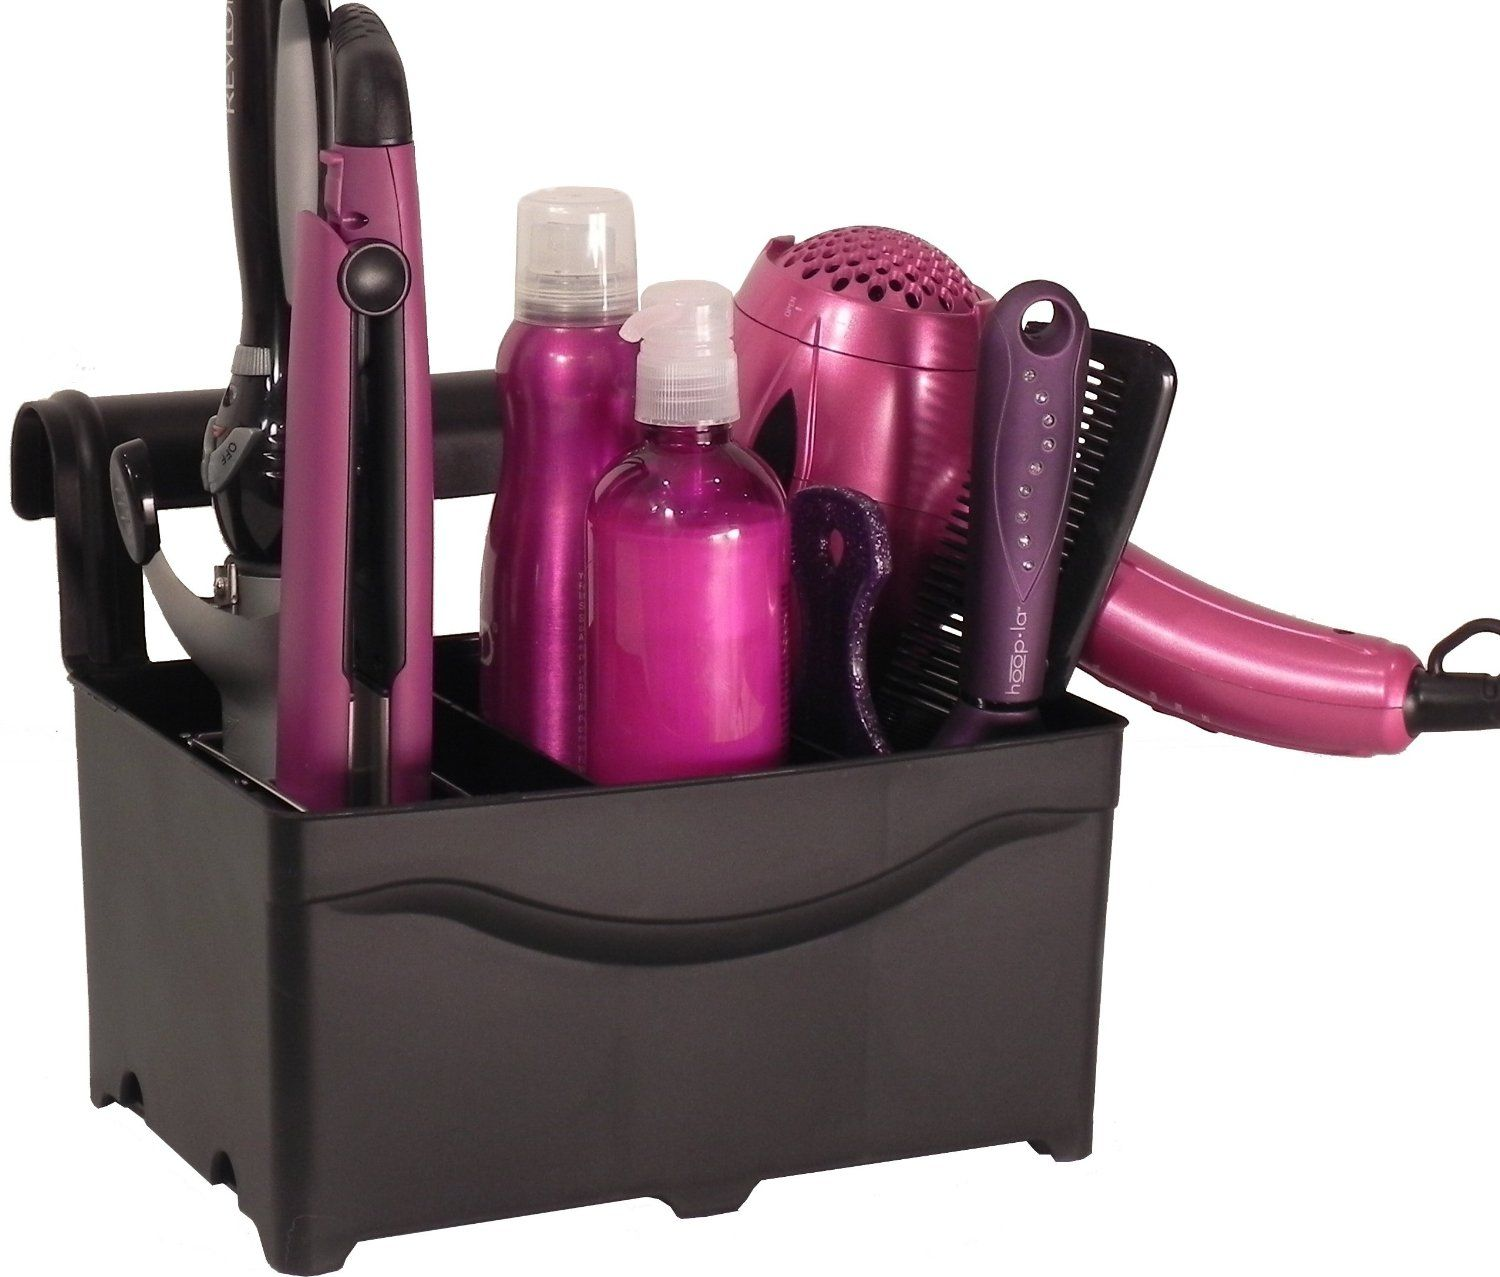 Charming Hair Dryer Curling Iron Organizer Part - 9: STYLEAWAY - BLACK; Curling Iron, Flat Iron, Blow Dryer, Hair Styling  Products